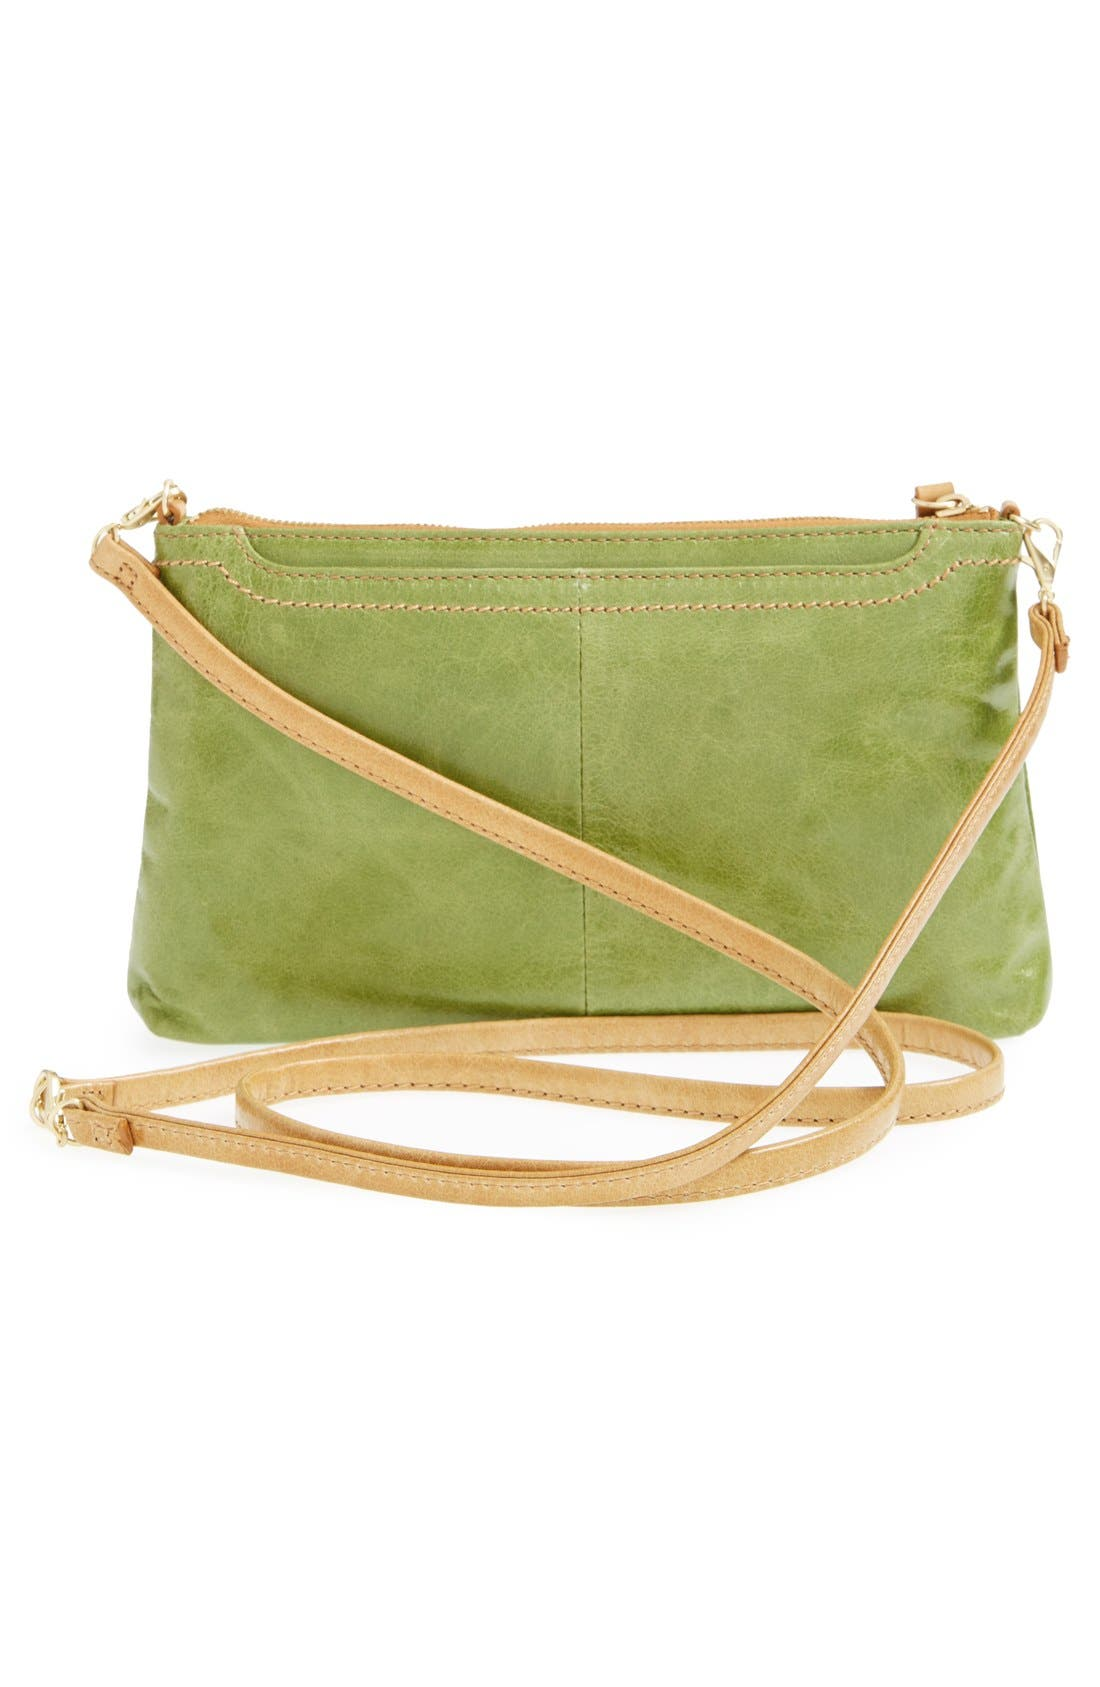 'Darcy' Leather Crossbody Bag,                             Alternate thumbnail 106, color,